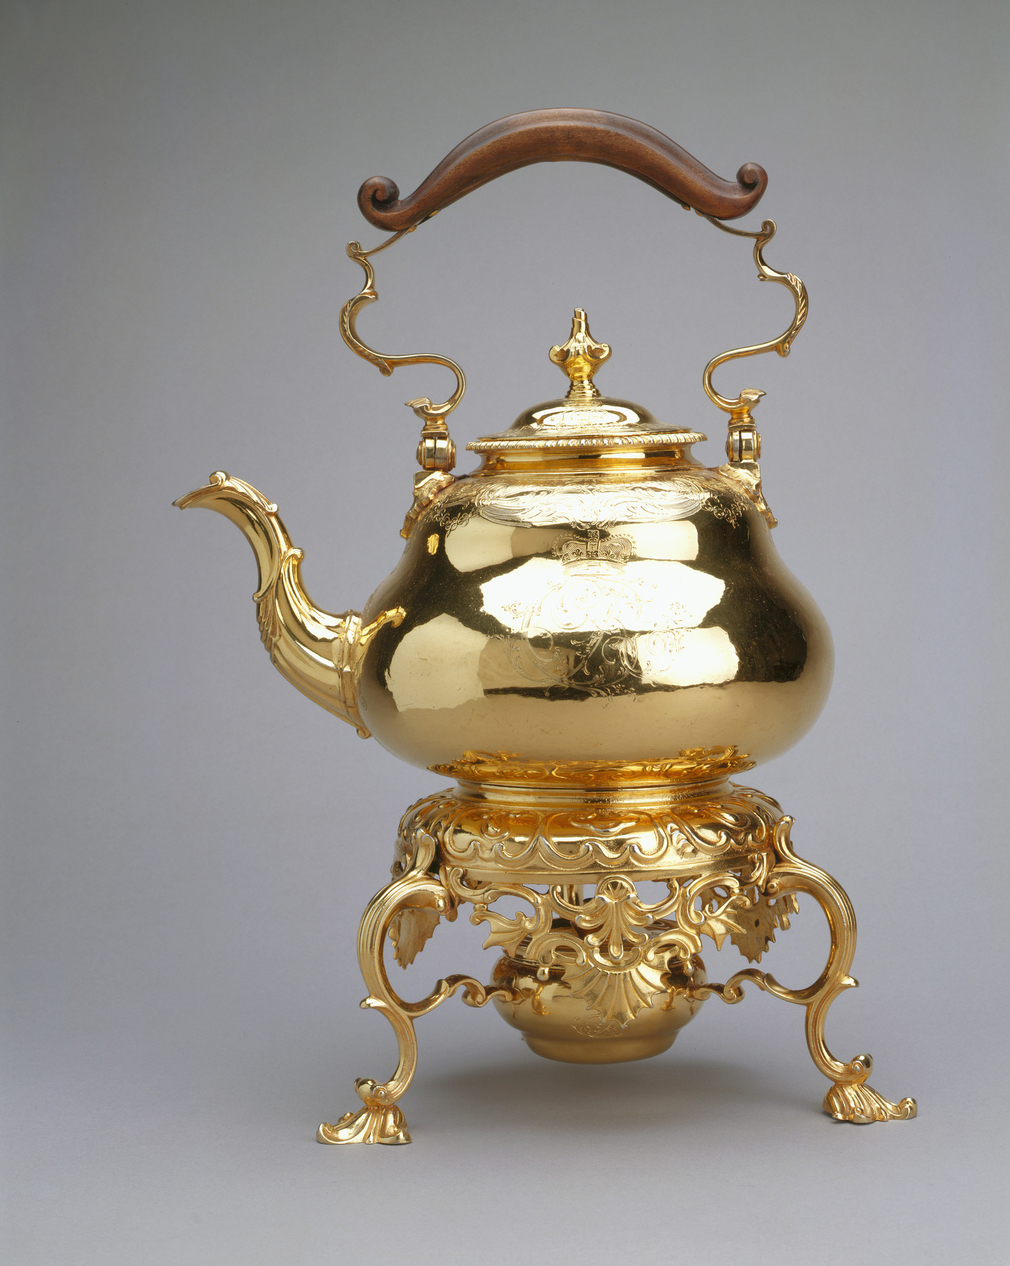 Silver gilt tea kettle. Hinged bail handle with ebonised wooden grip. Domed detachable cover with baluster finial. Pear shaped kettle with curved spout; engraved with foliate scrolls and crowned CR monogram. Circular stand with pierced apron; on 3 scroll